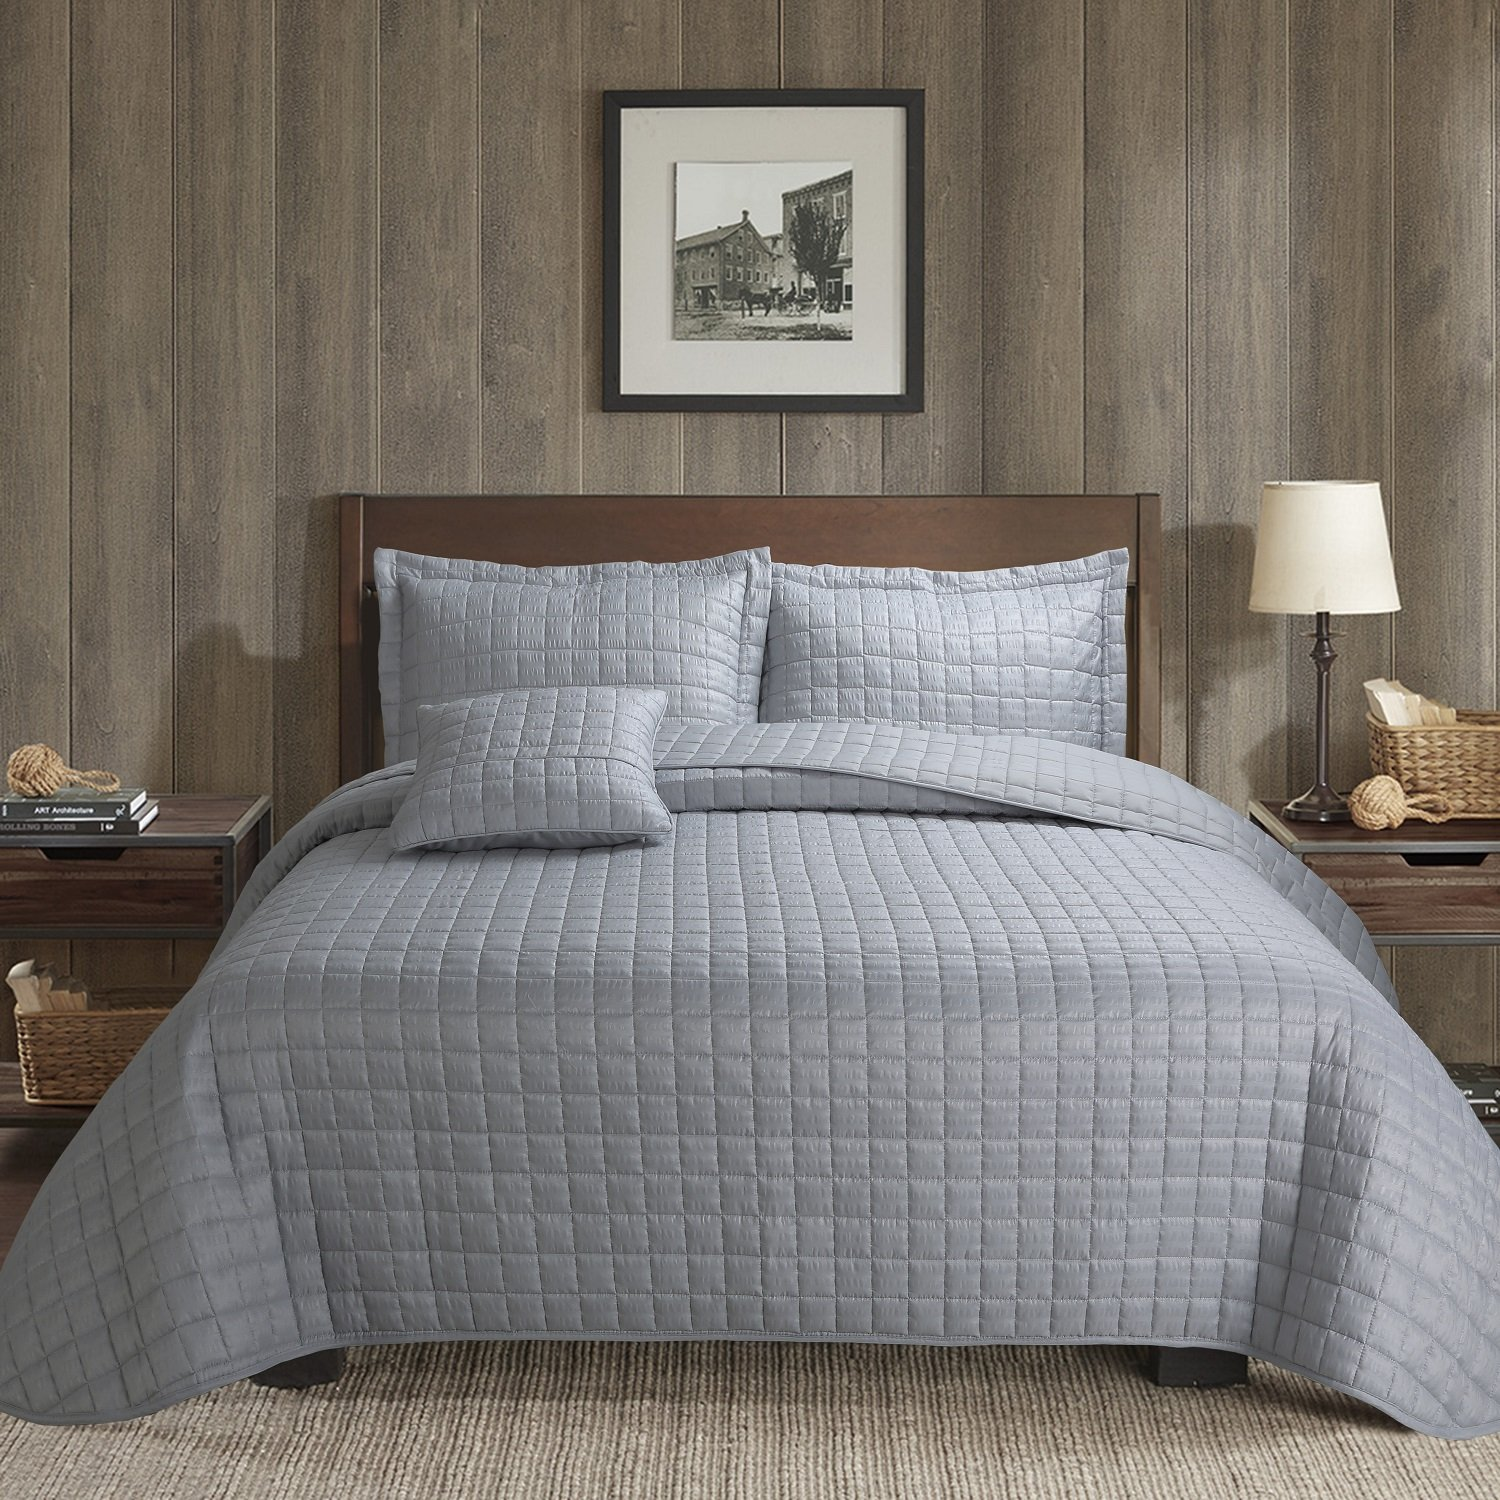 4-Piece Bubble Reversible Solid Quilt set with Shams,as Bedspread,Coverlet, Blanket, summer quilt or Bed Cover,King size -Soft, Lightweight and Hypoallergenic,all seasons (GRIGIO PERLA, 106X96)